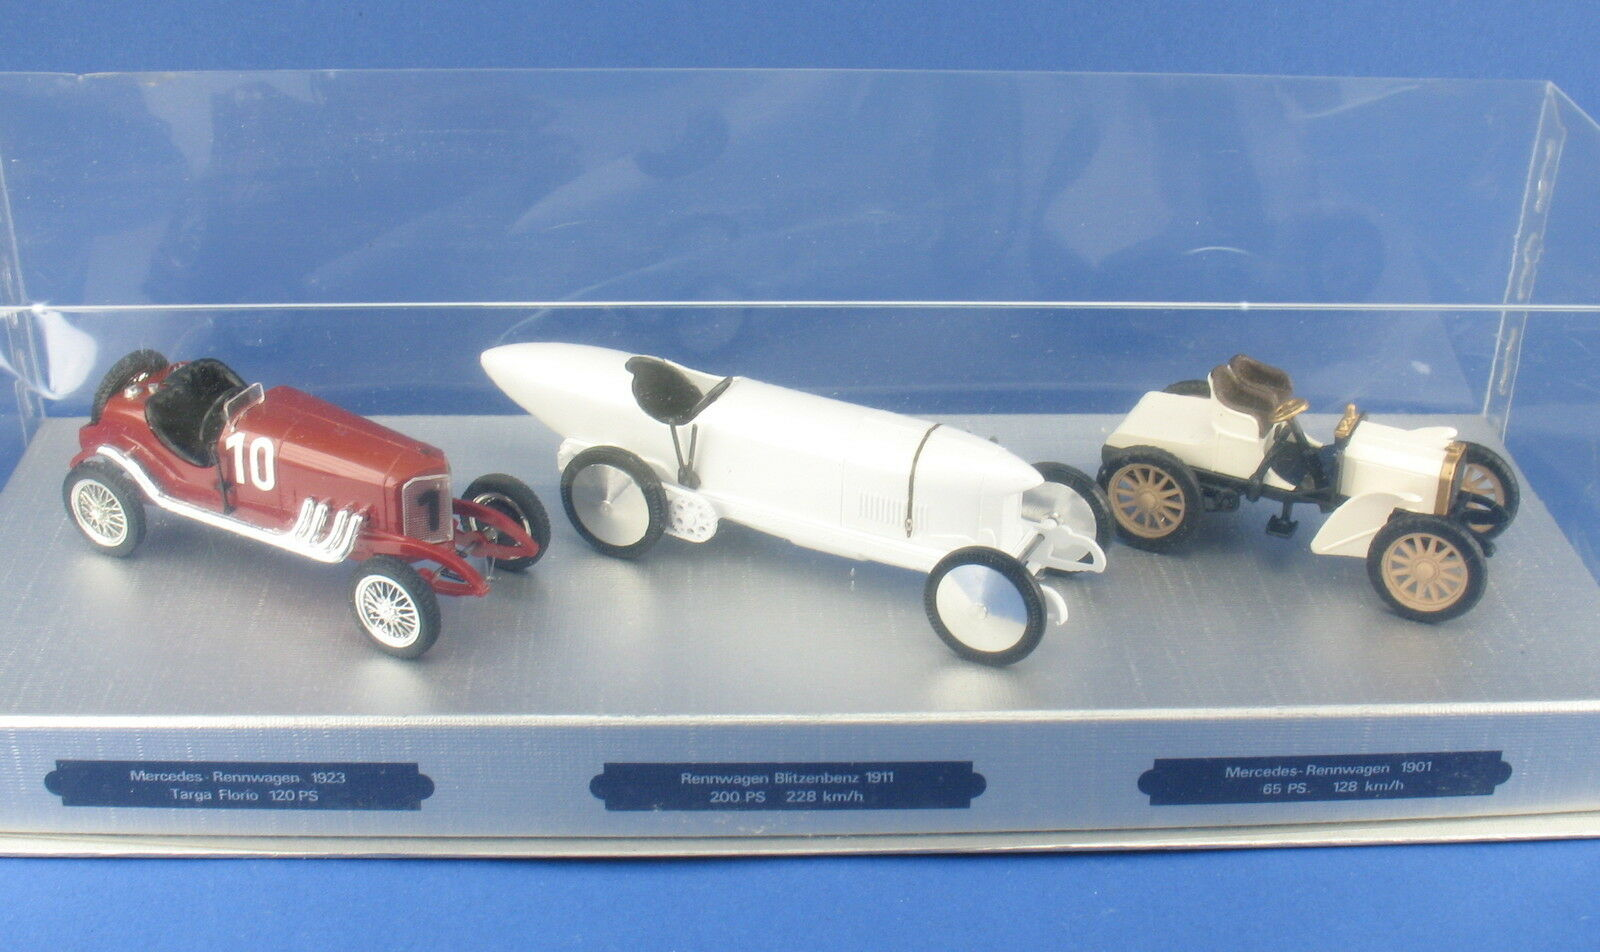 Cursor-Mercedes-Targa Florio + Lightning Benz 1911 + Racing Cars 1901 - 1 43